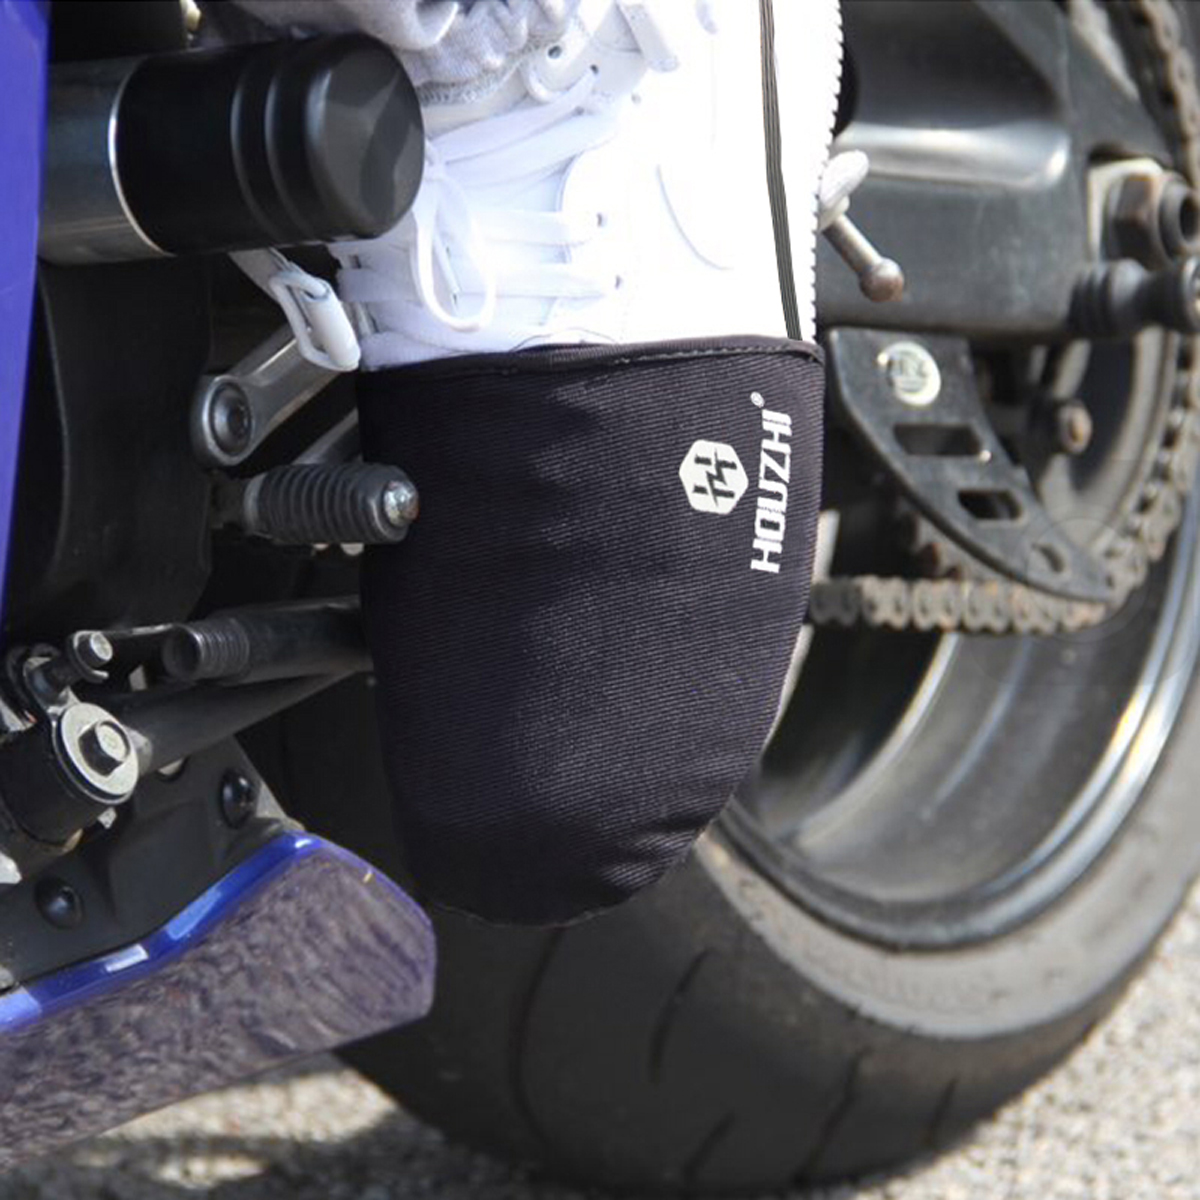 Motorcycle Shifter Shoe Cover Sock Boot Protecter Anti-slip Rubber Black Waterproof